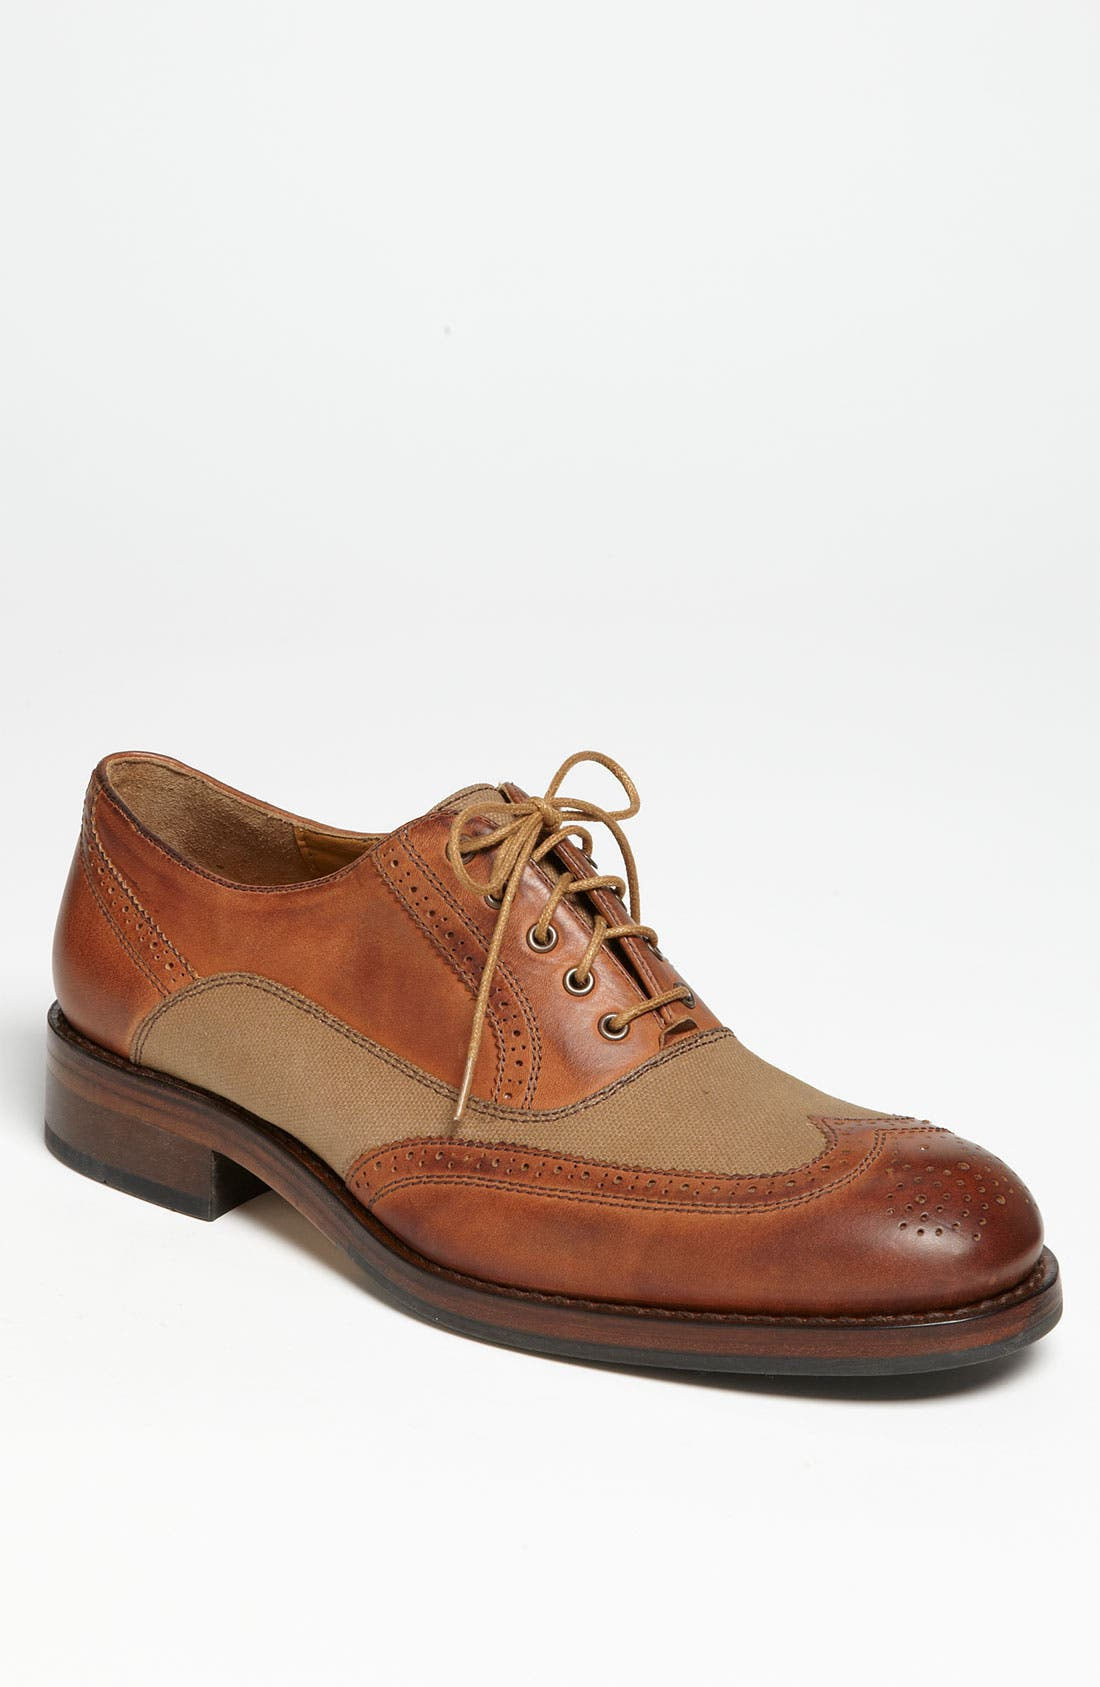 Main Image - Wolverine 'Bromley' Oxford